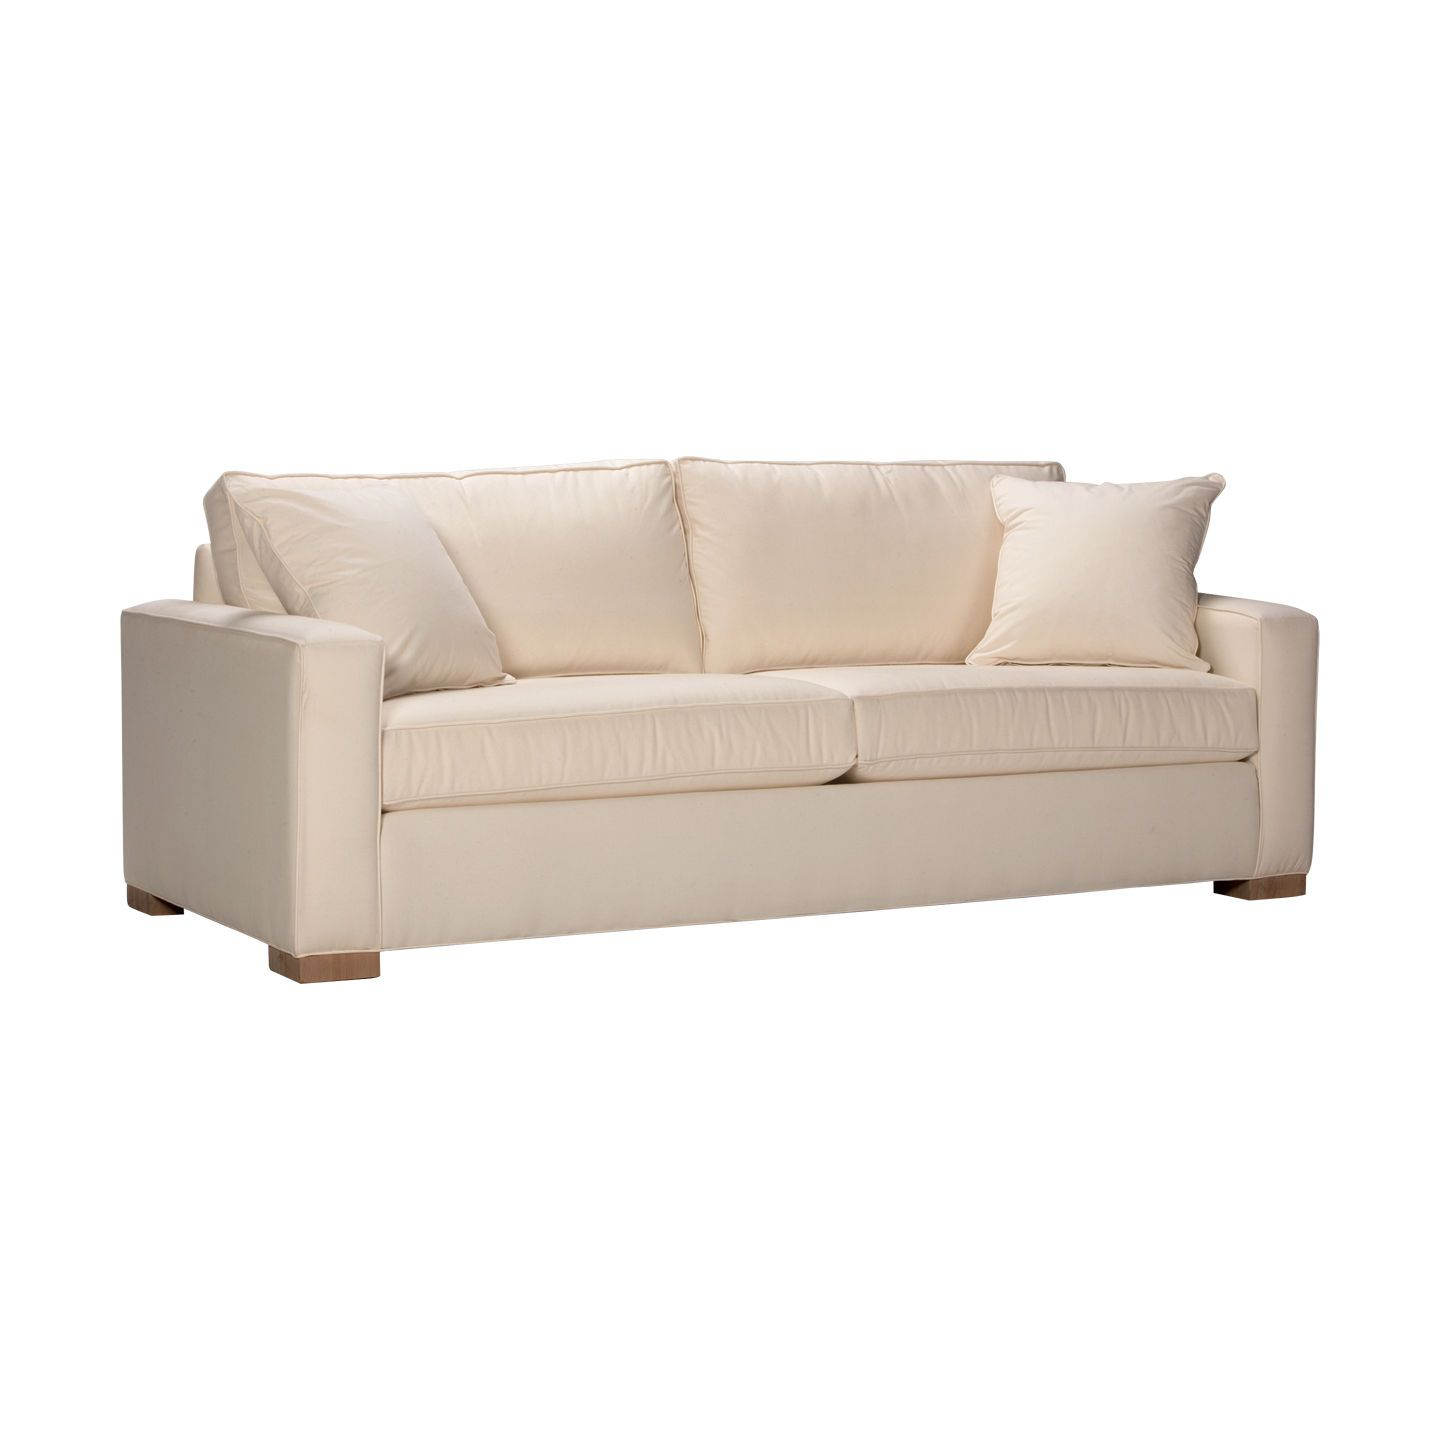 Hudson Sofas And Loveseats Ethan Allen Us Living Room Update